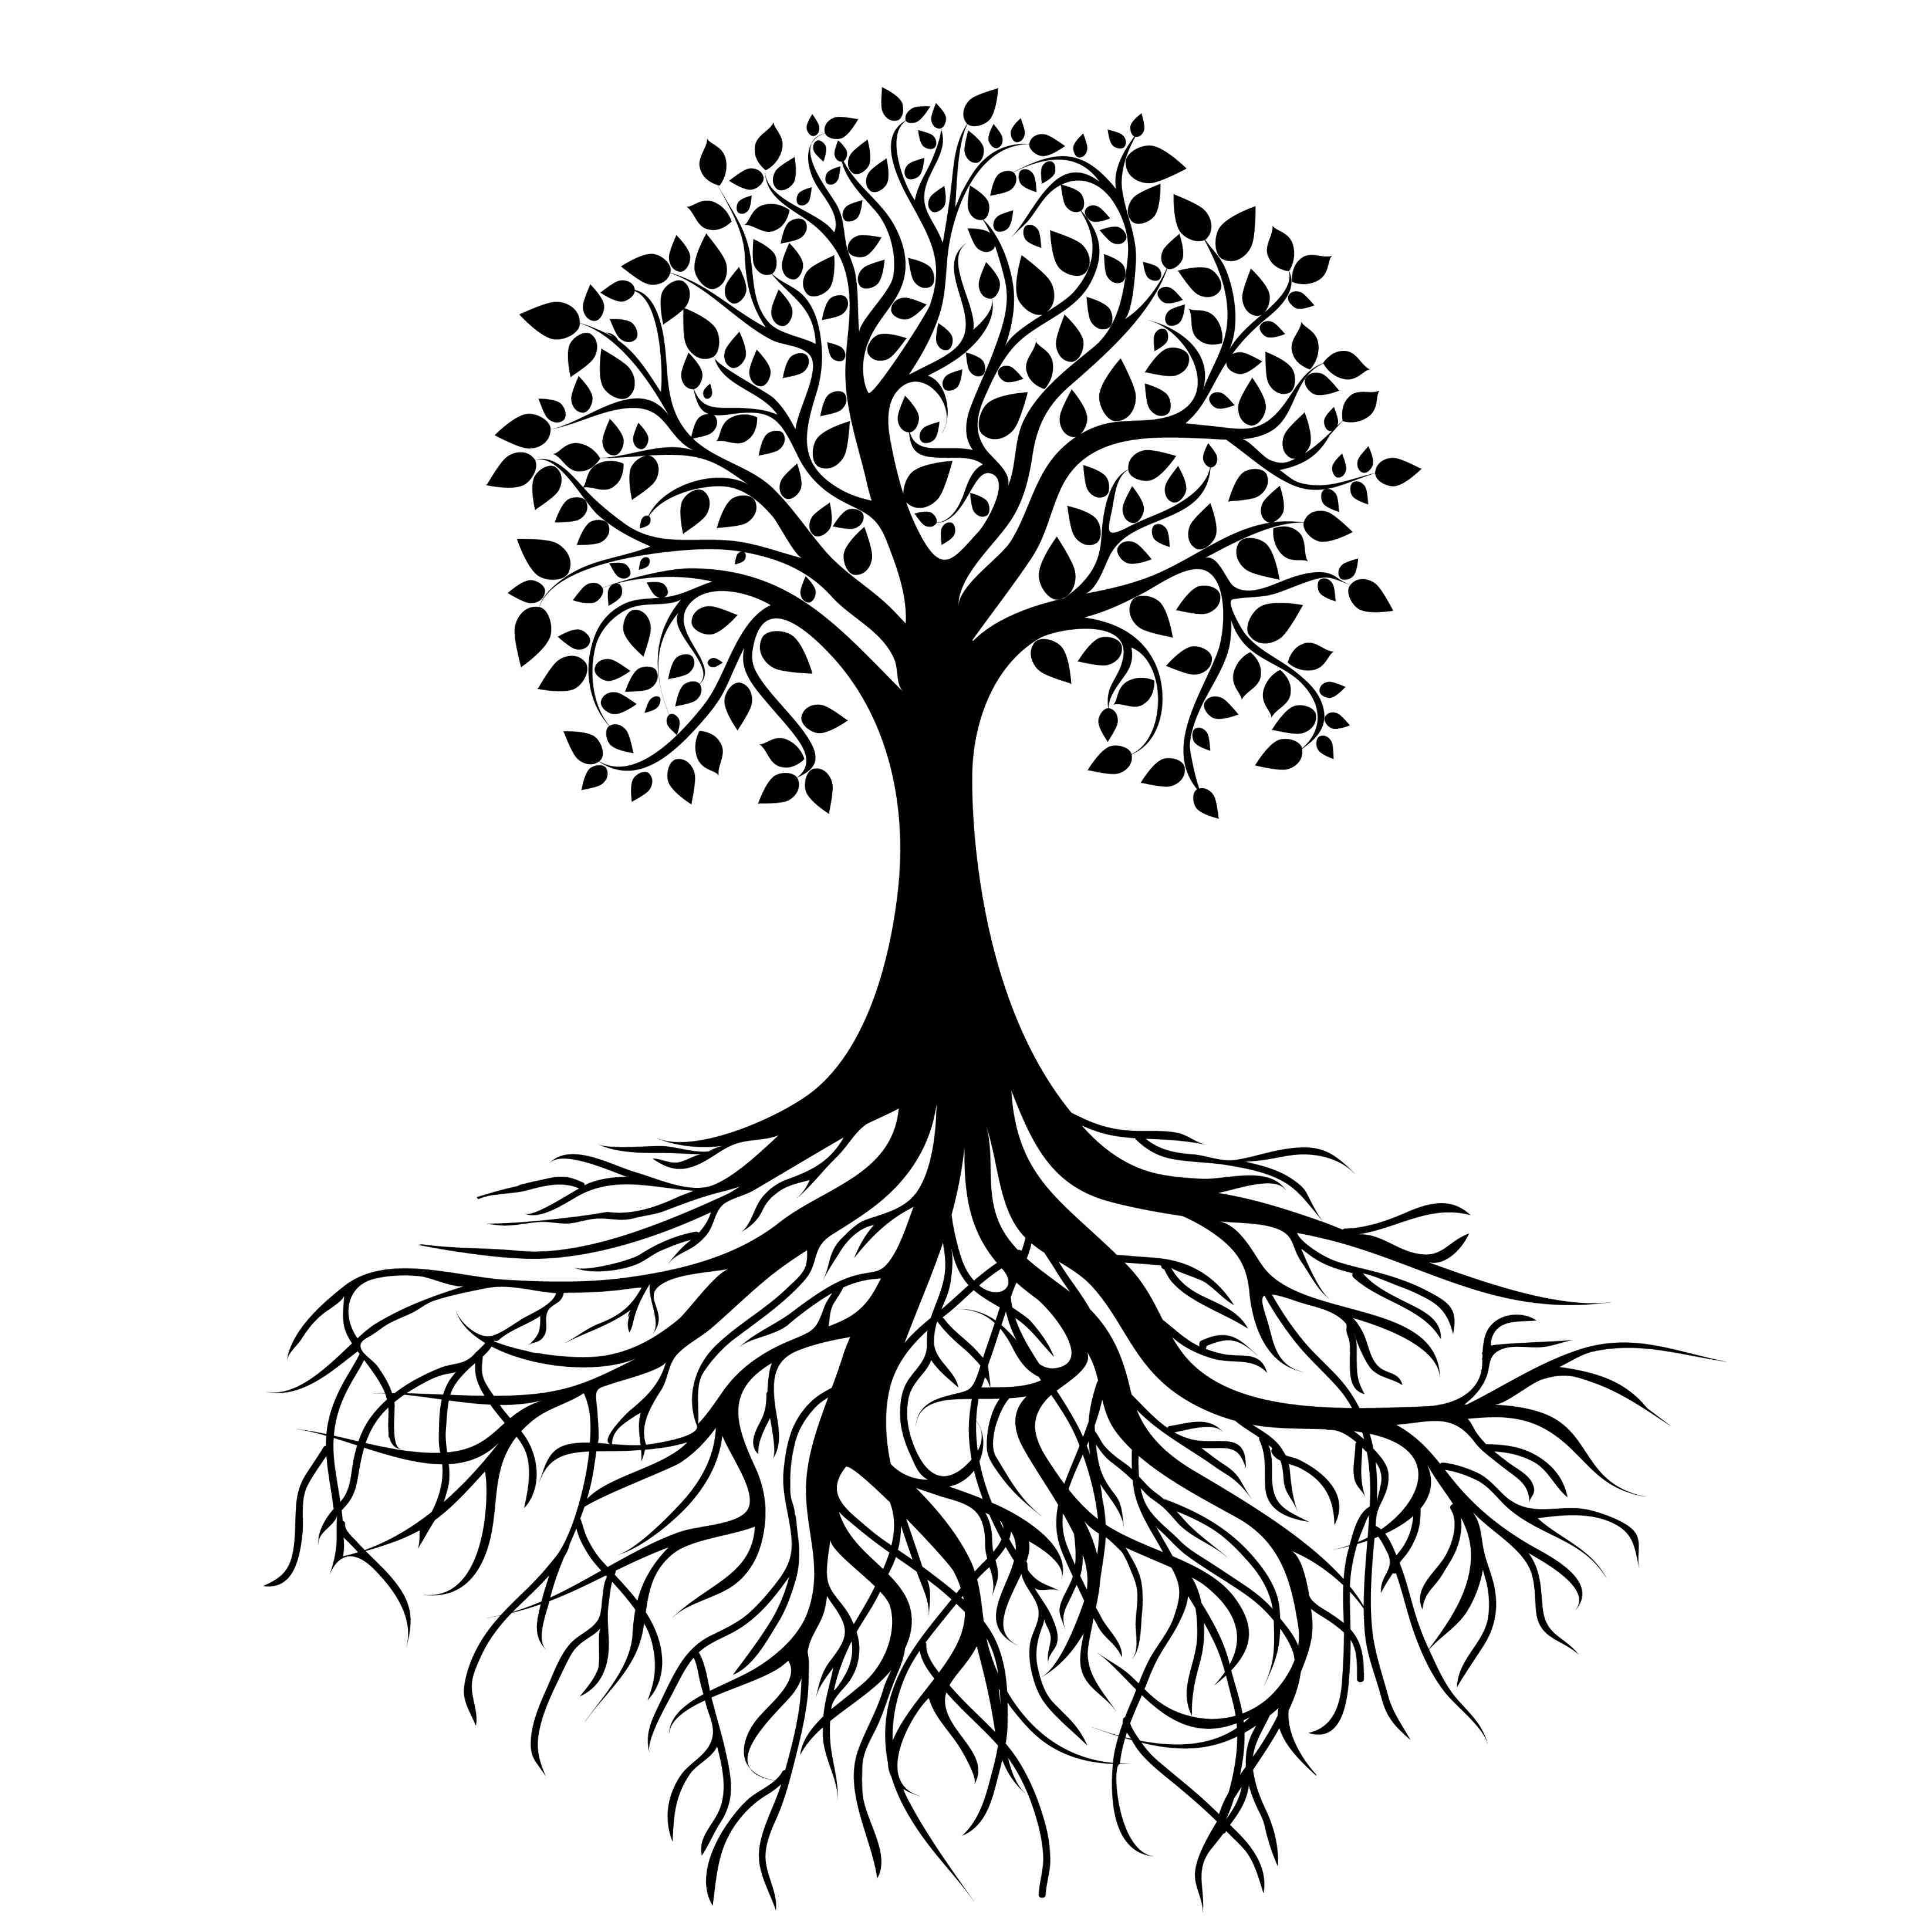 Tree And Roots Silhouette At Getdrawingscom Free For Personal Use